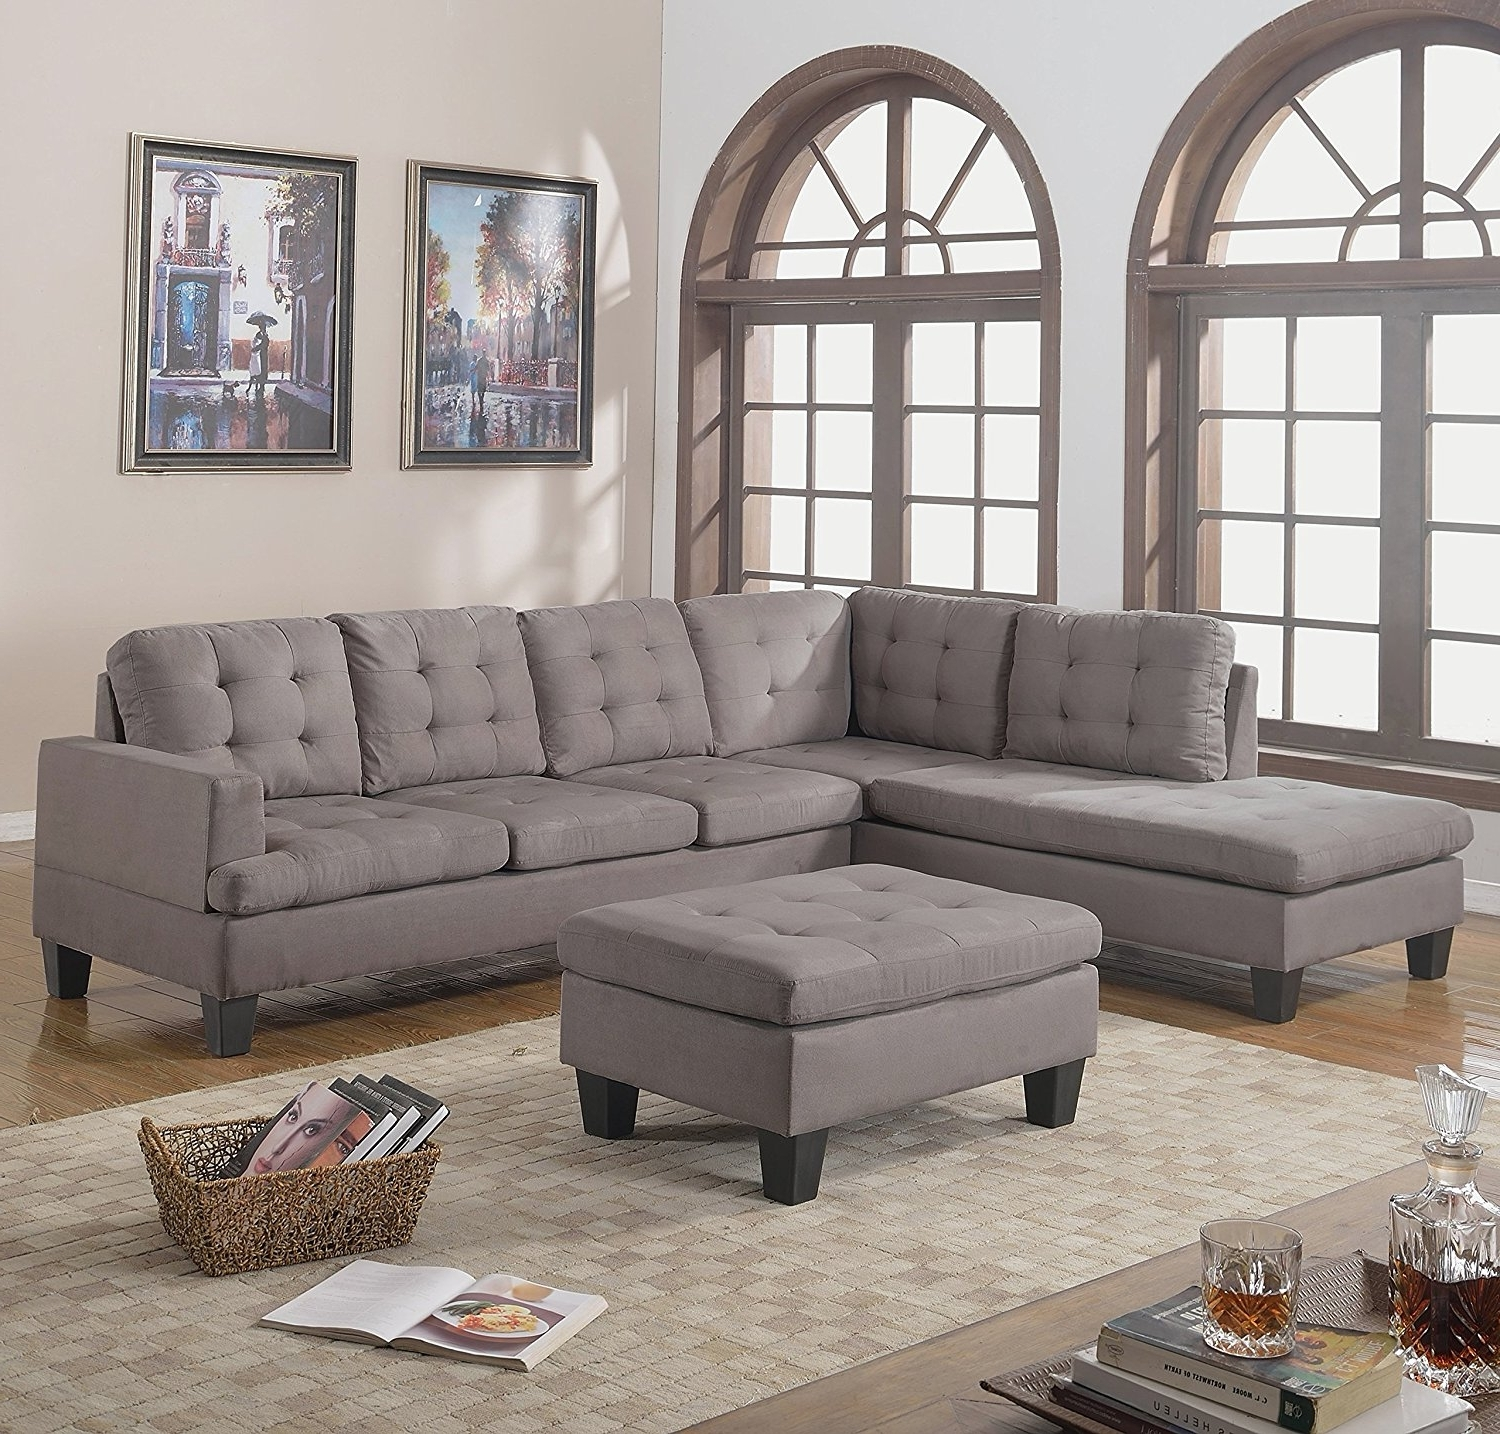 2018 Furniture : American Furniture Warehouse 470 Living Room Furniture Throughout Kansas City Mo Sectional Sofas (View 5 of 20)